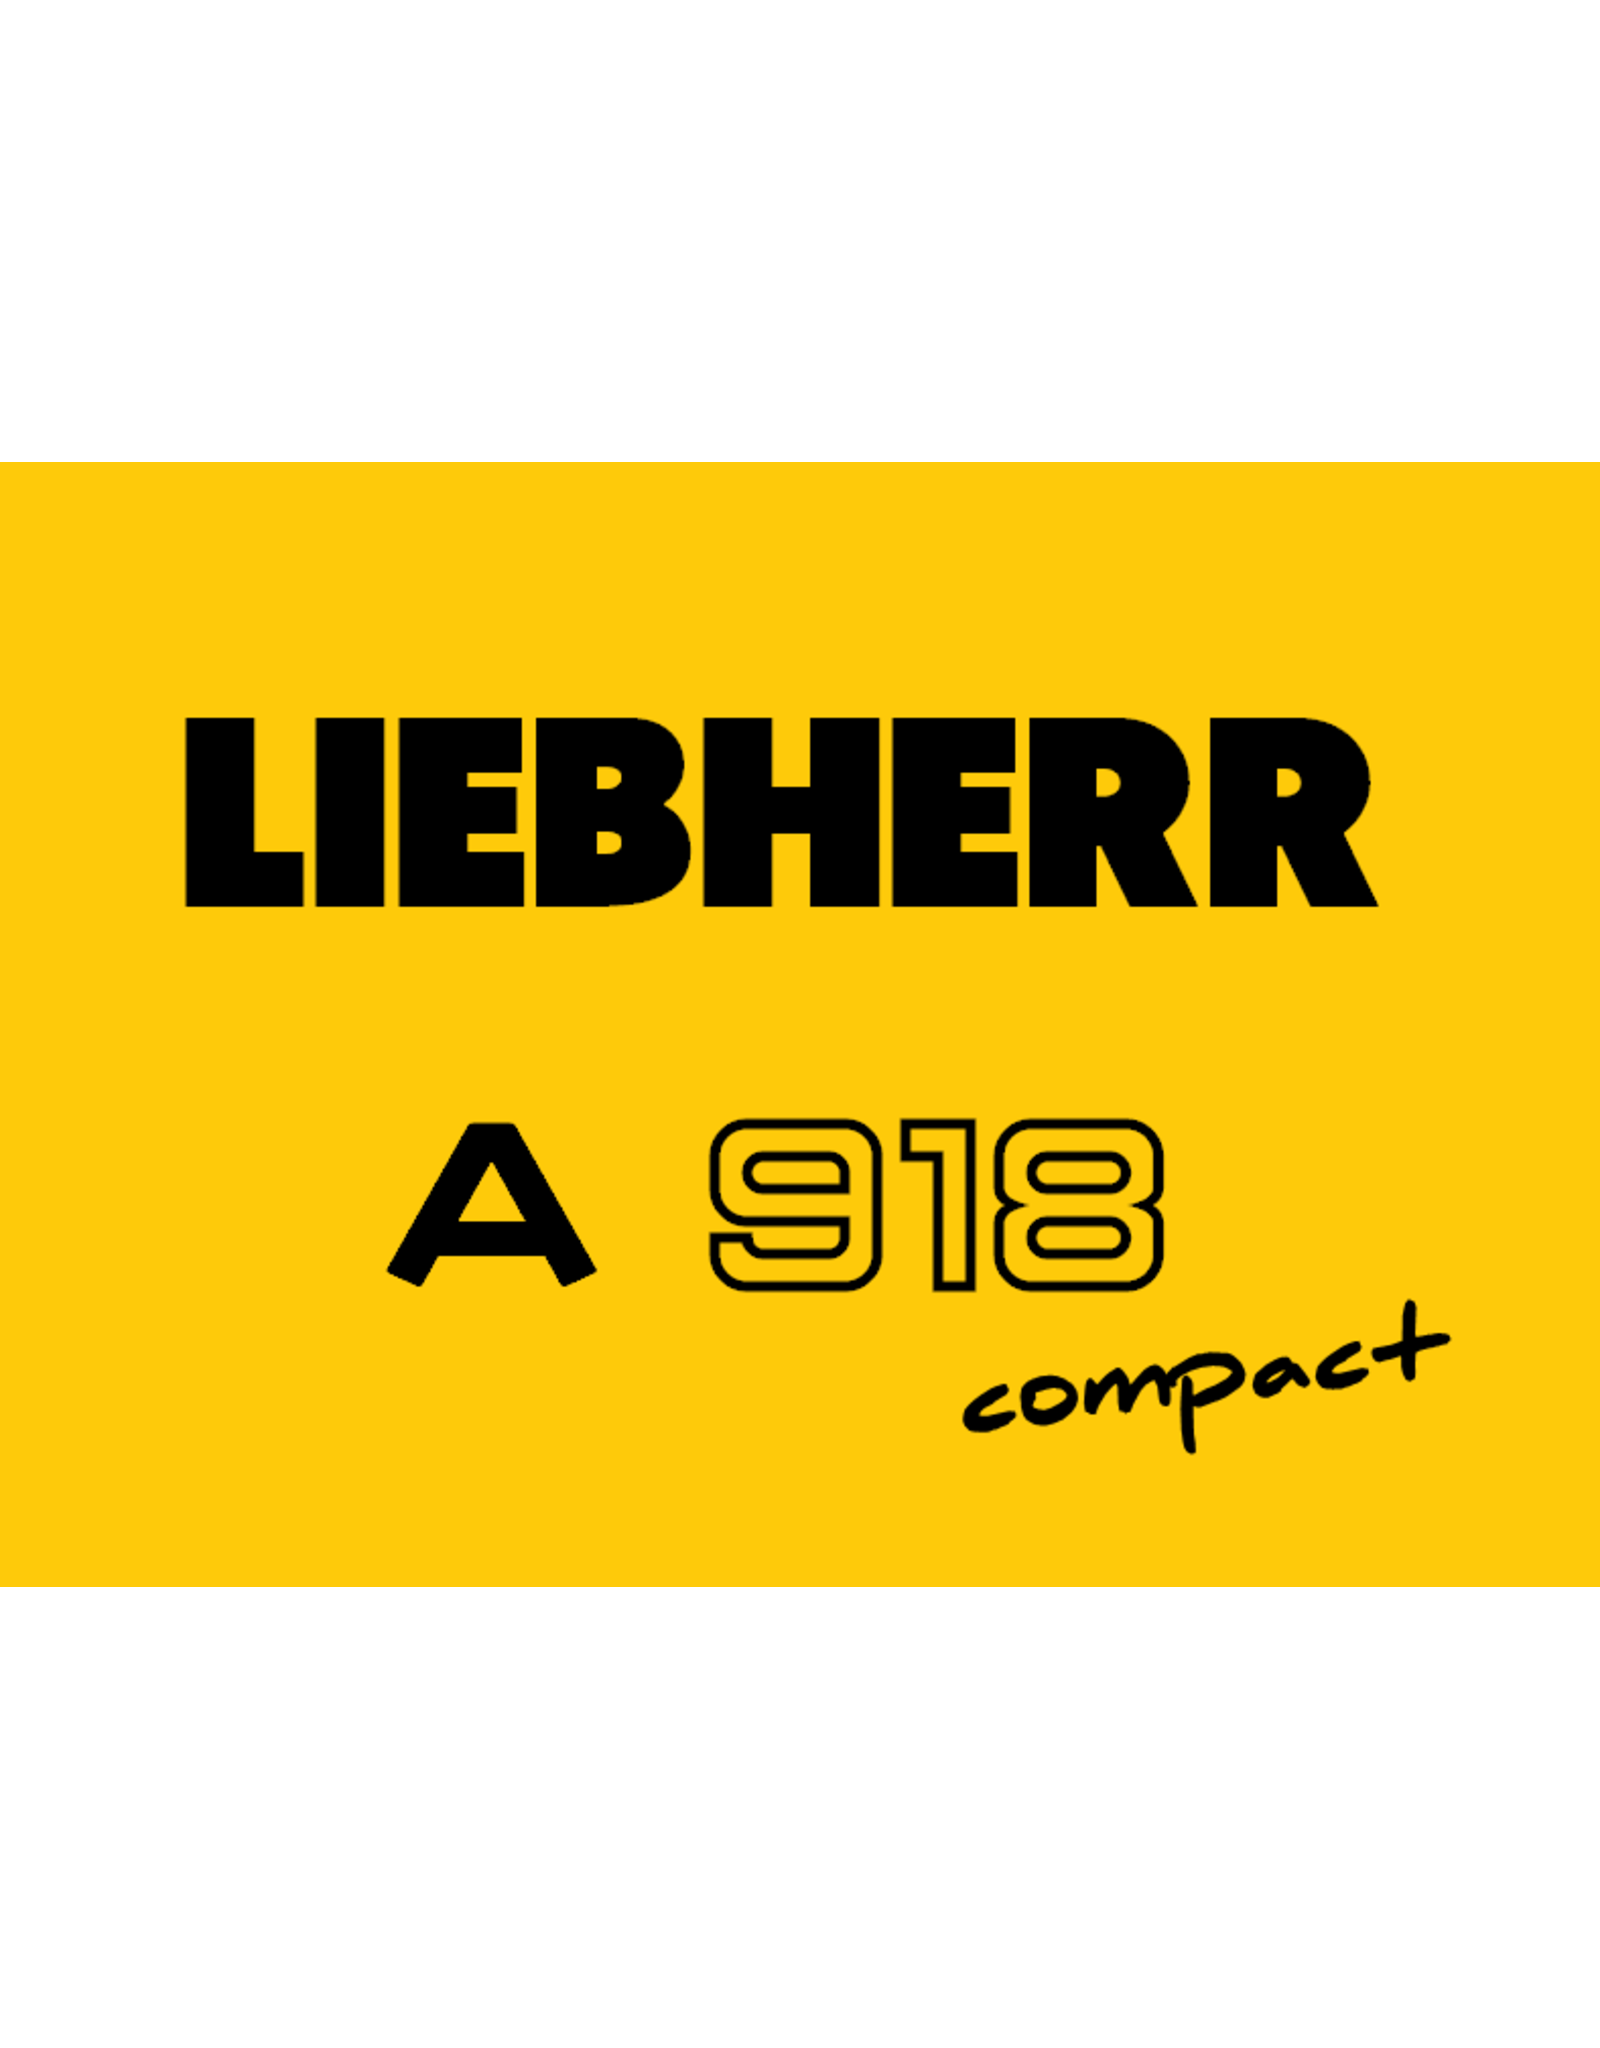 Echle Hartstahl GmbH FOPS for Liebherr A 918 Compact